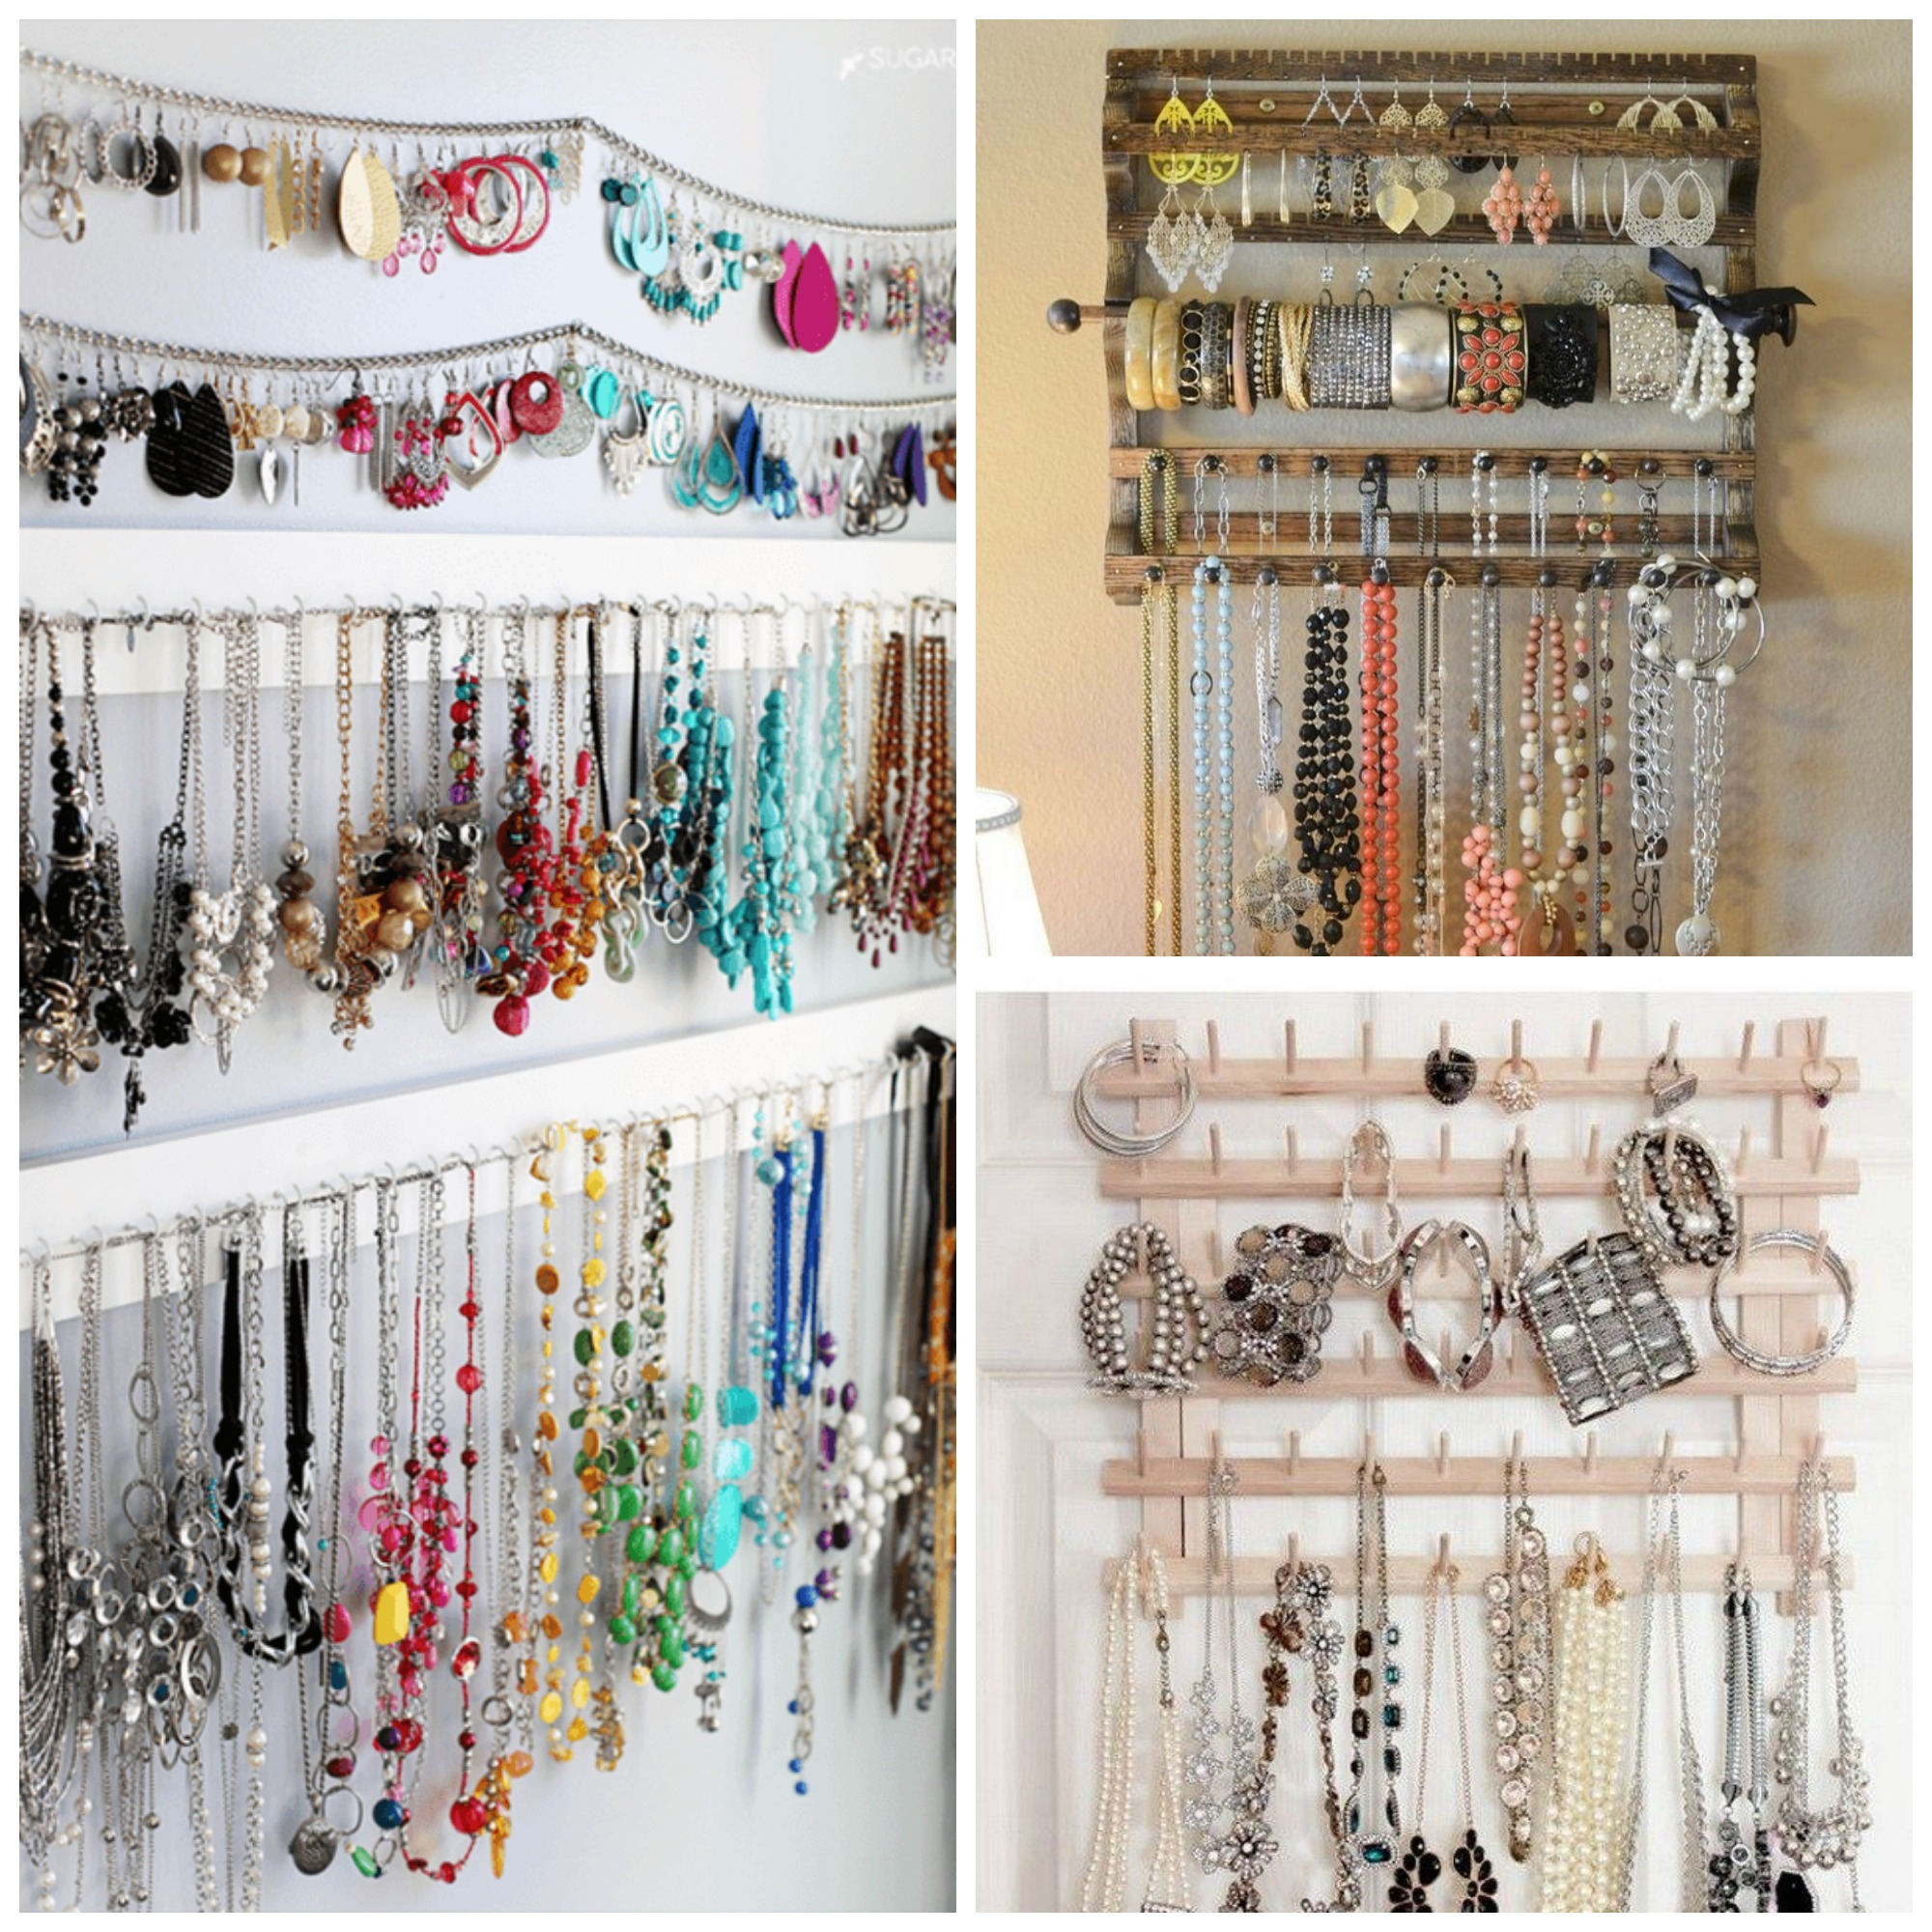 21 Jewelry Organizers That Will Make Your Life Easier Chasing A Better Life Lifestyle Keto Guide Travel Keto Recipes